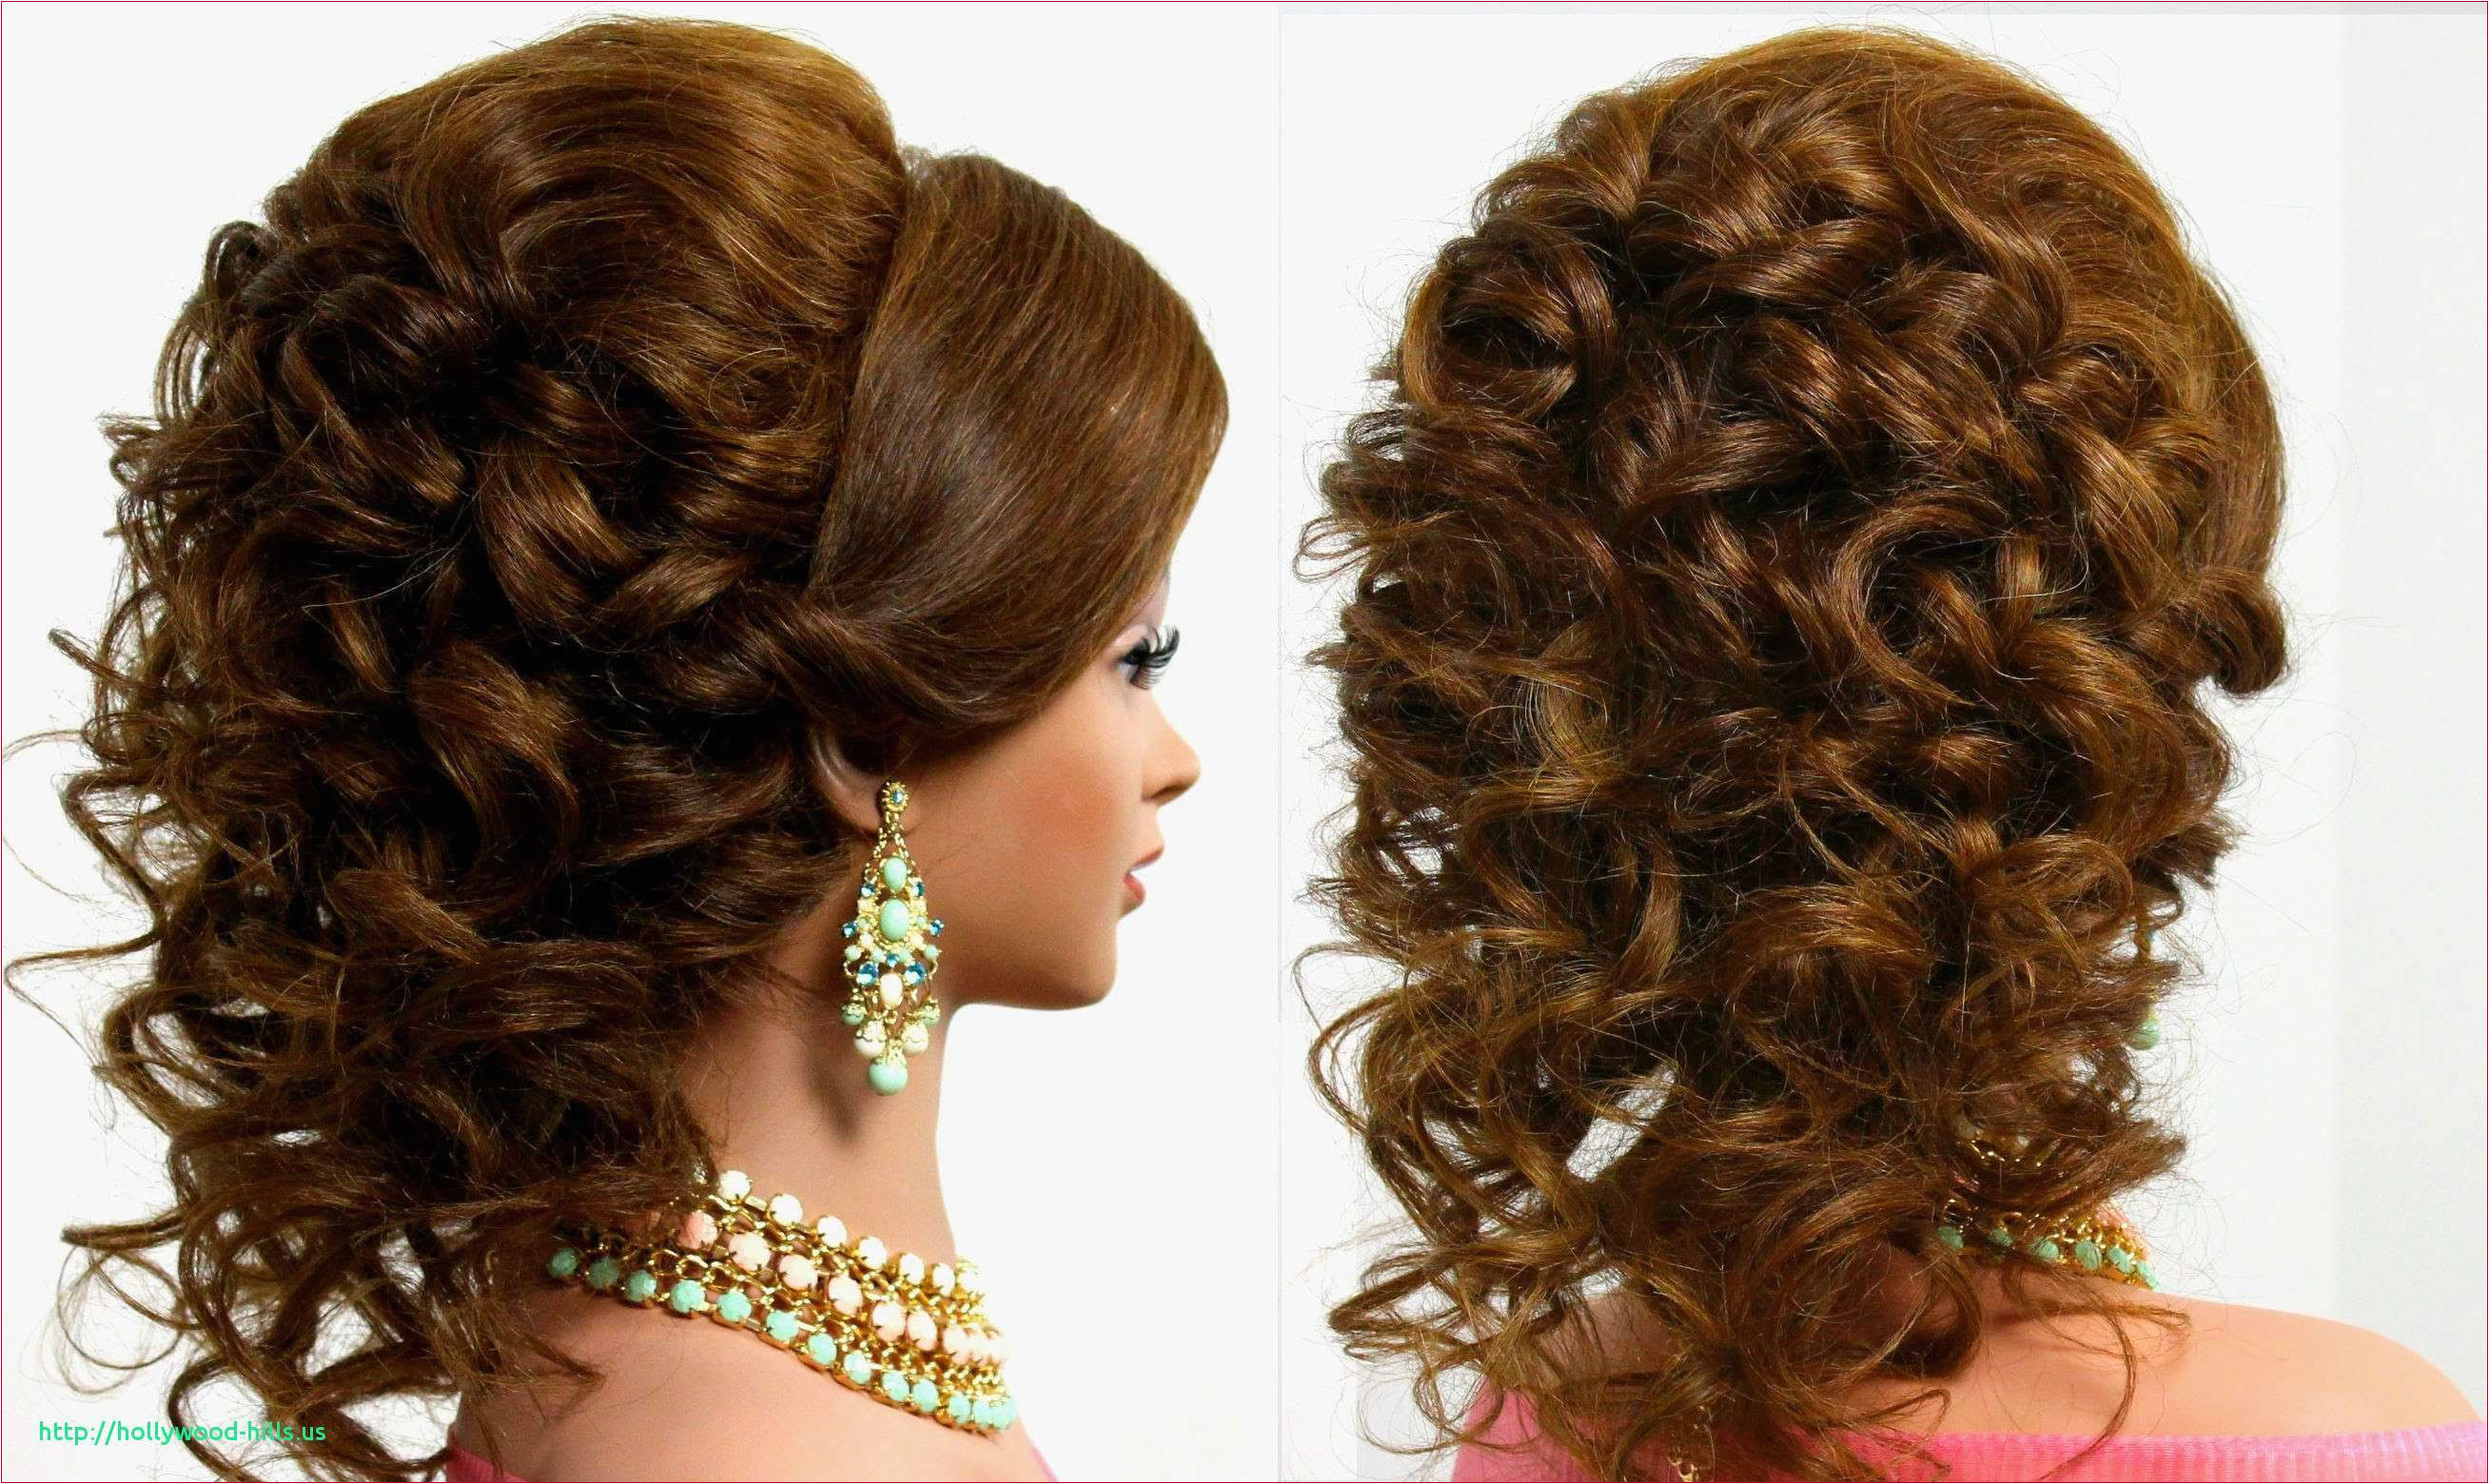 Wedding Hairstyles Up and Down Simple Hairstyles for Prom Updos Bridal Hairstyle 0d Wedding Hair Luna